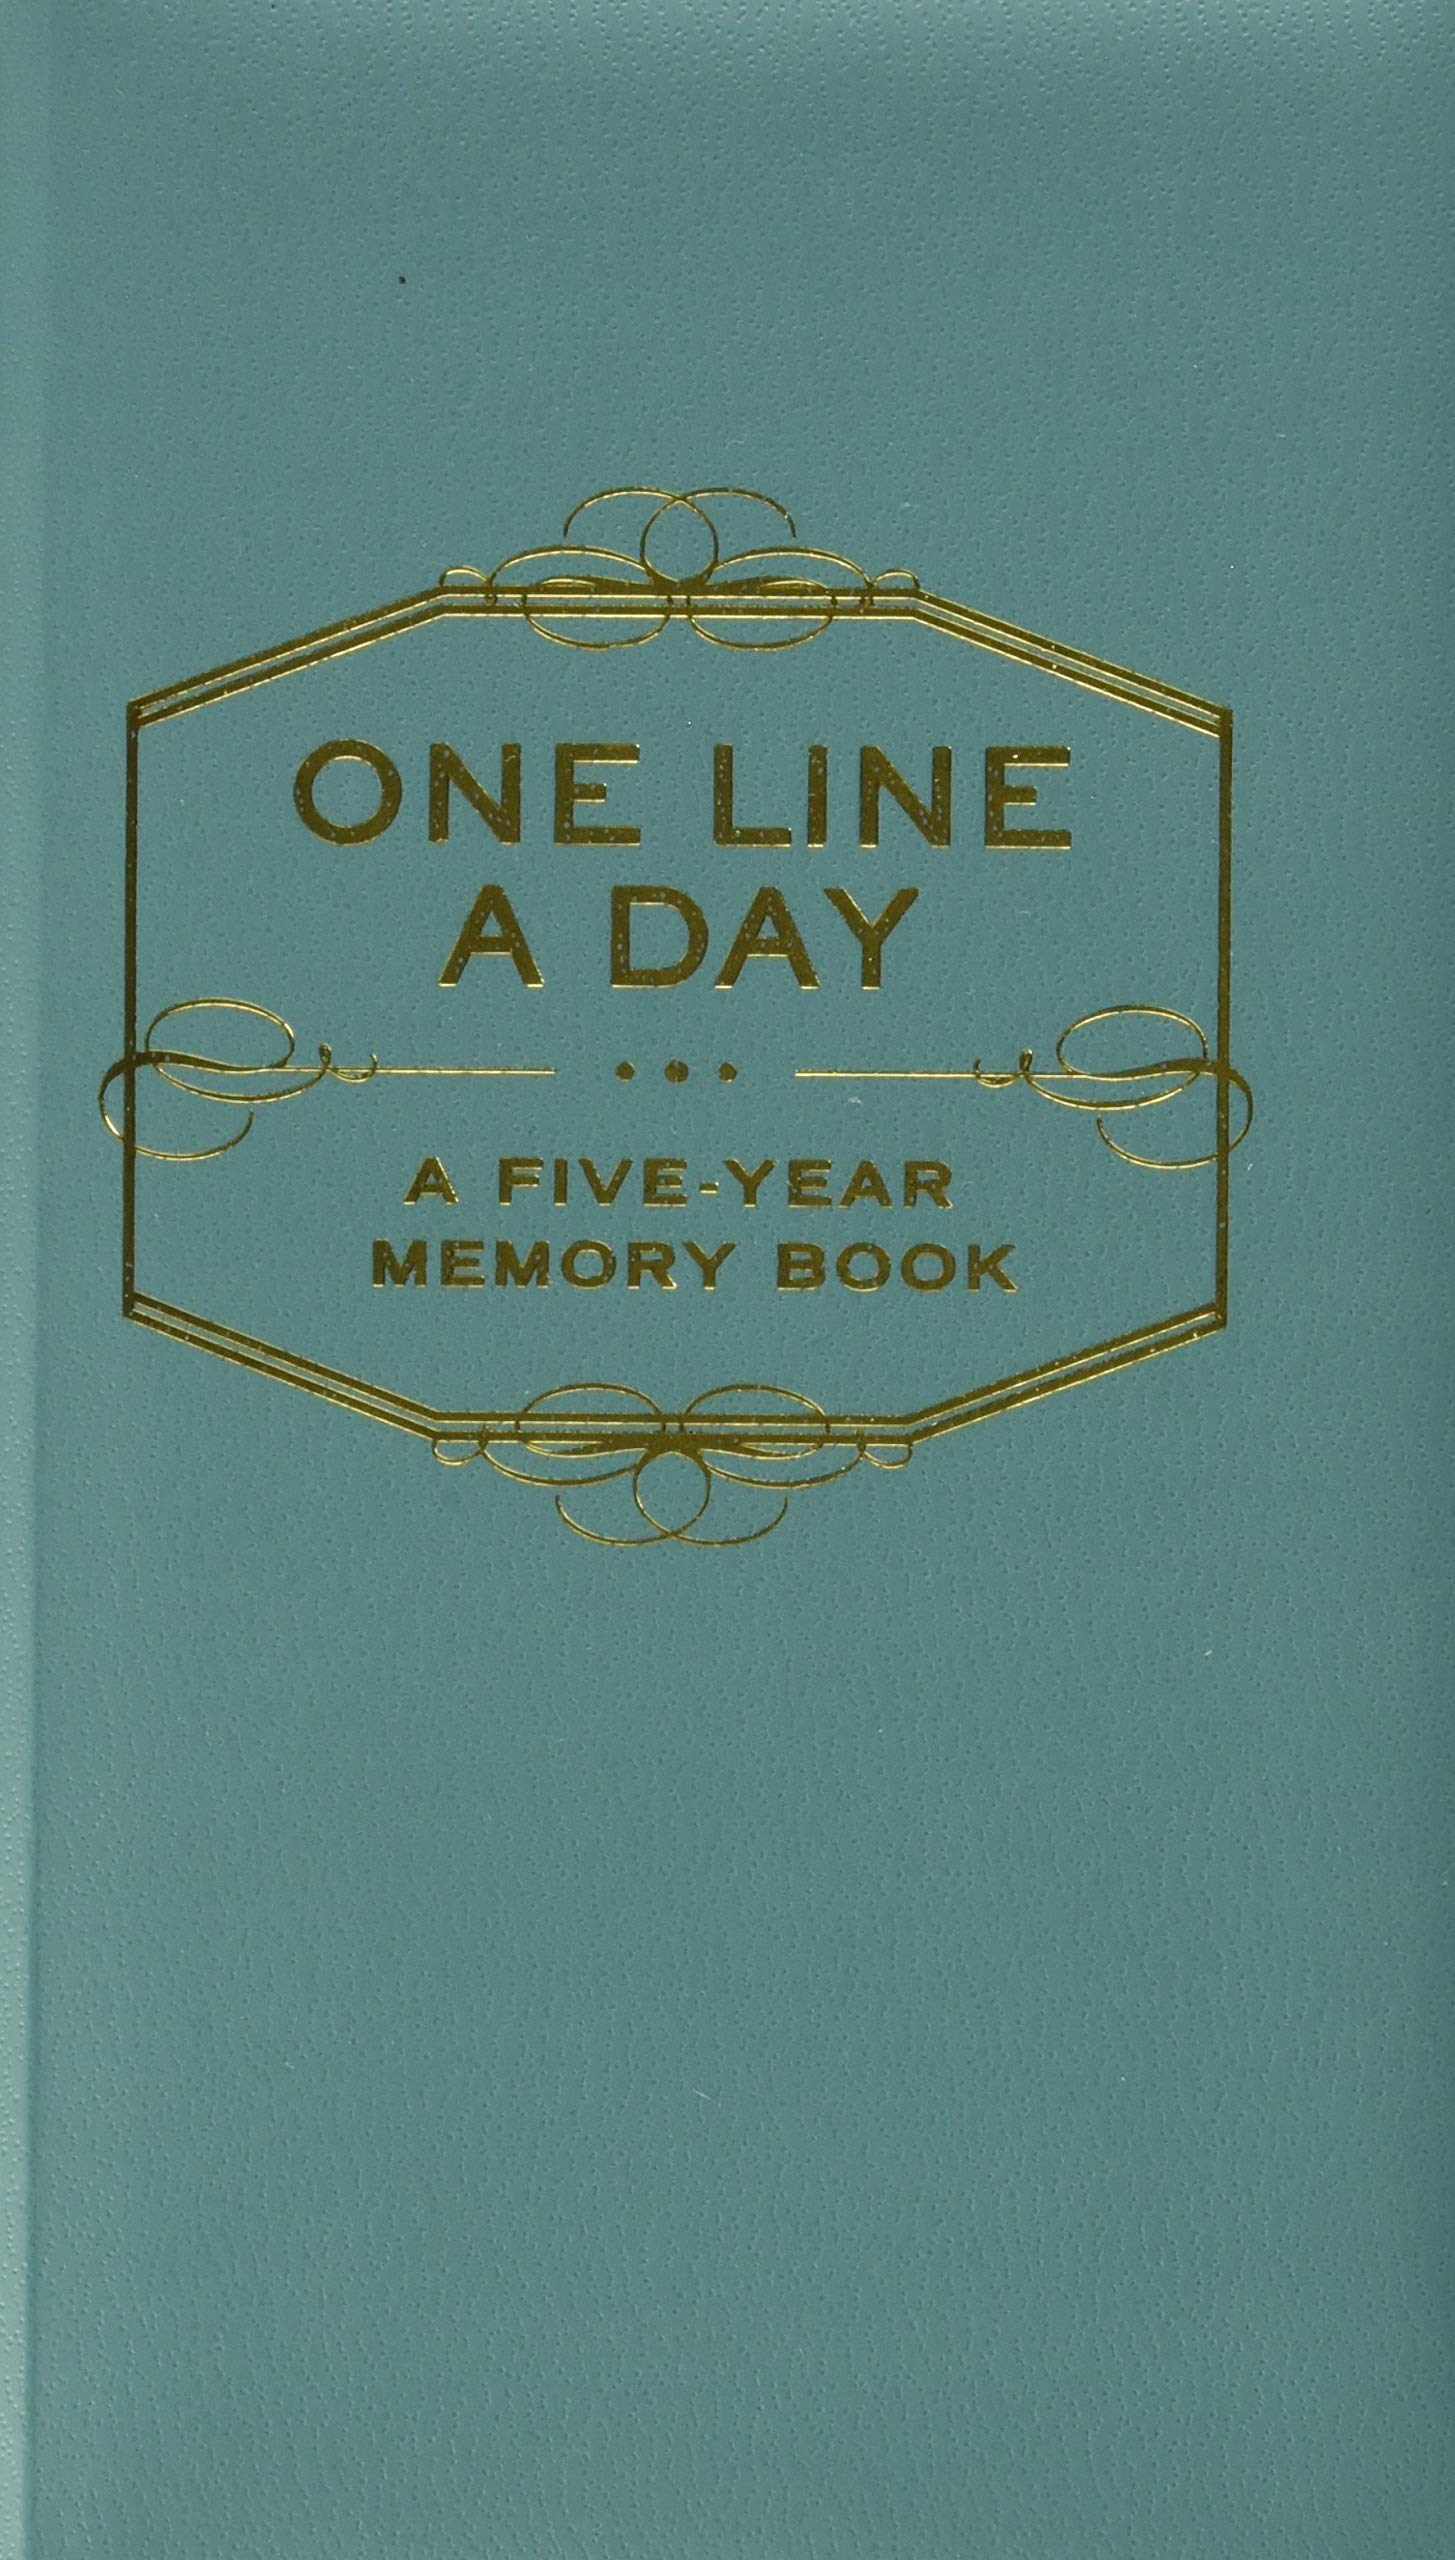 Image for One Line A Day: A Five-Year Memory Book (5 Year Journal, Daily Journal, Yearly Journal, Memory Journal)